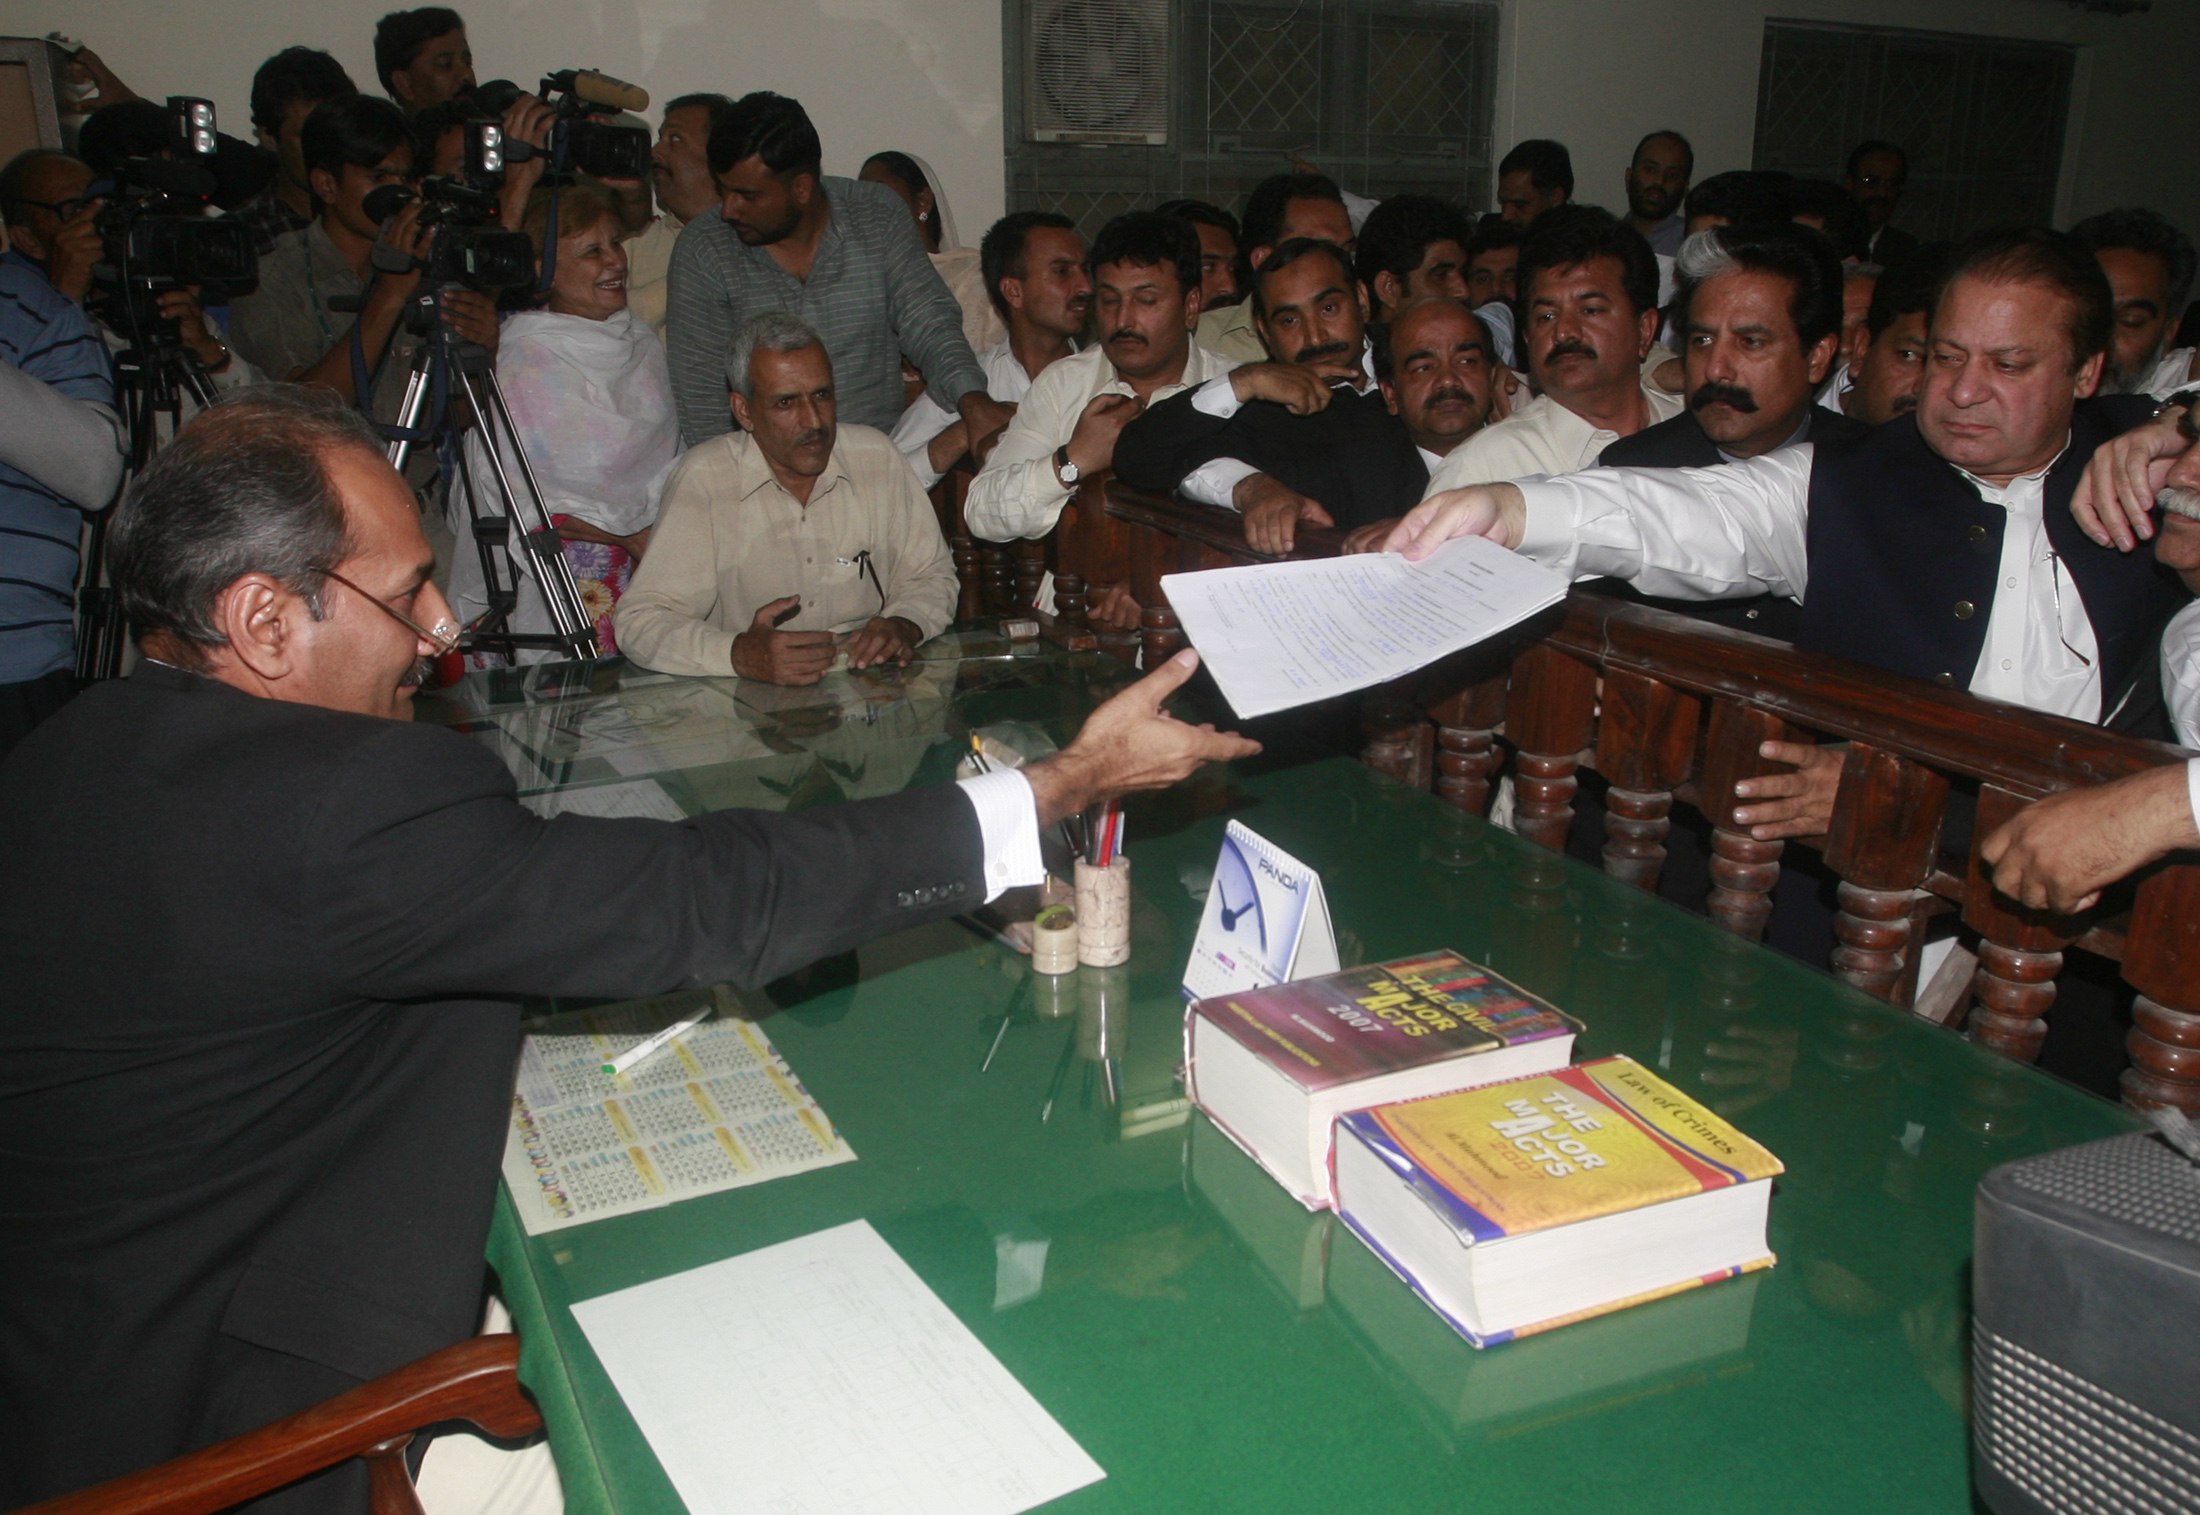 Former prime minister Nawaz Sharif (R) submits his nomination papers to contest a by-election in Rawalpindi May 12, 2008.